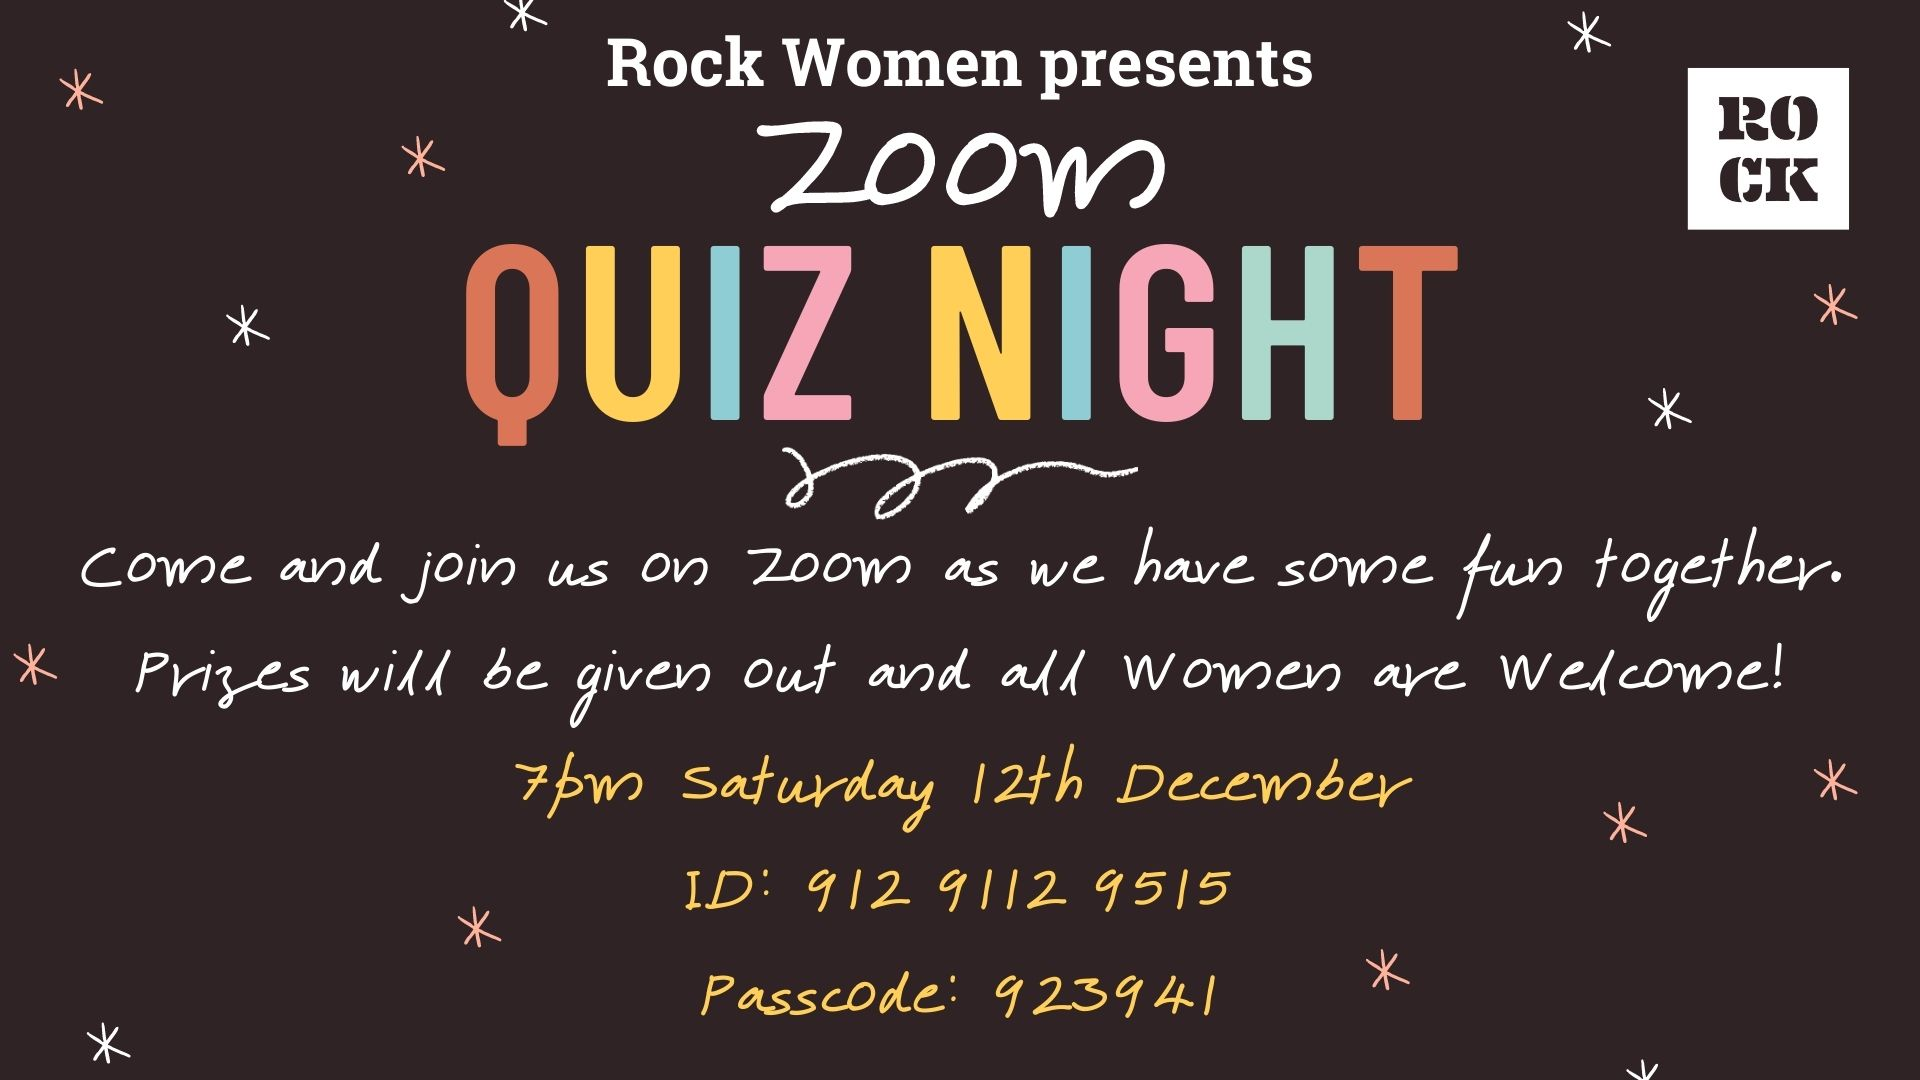 Rock Women's Zoom Quiz Night - 7pm Saturday 12th December 2020